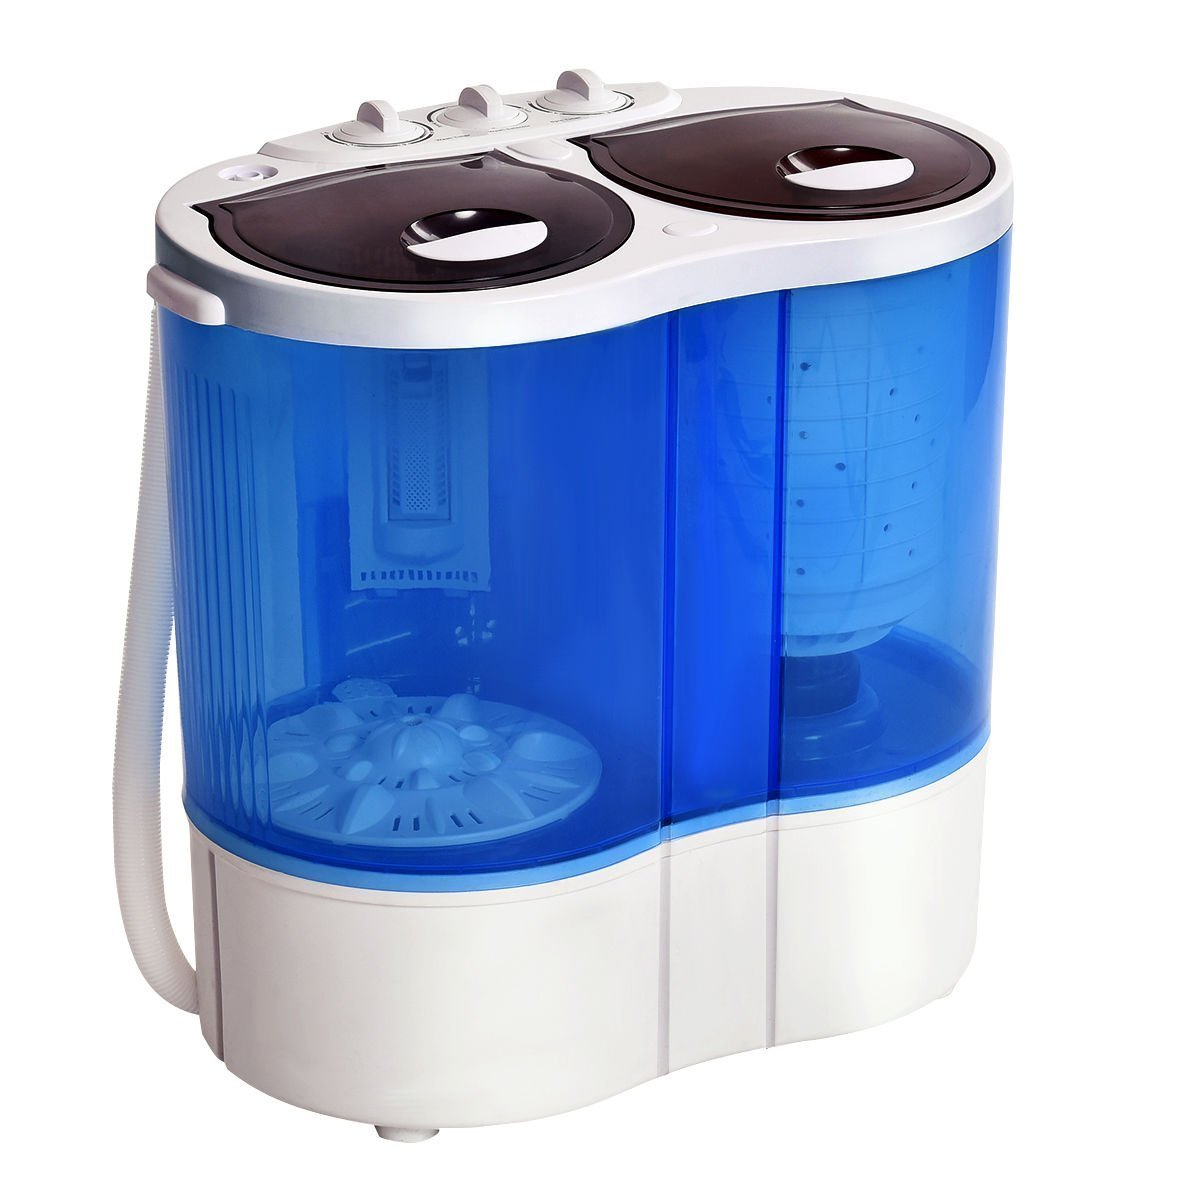 Giantex 15lbs Portable Mini Washing Machine Gravity Drain Compact Twin Tub Washer Spinner, Ideal for Dorms, Apartments, RVs, Camping EP22757